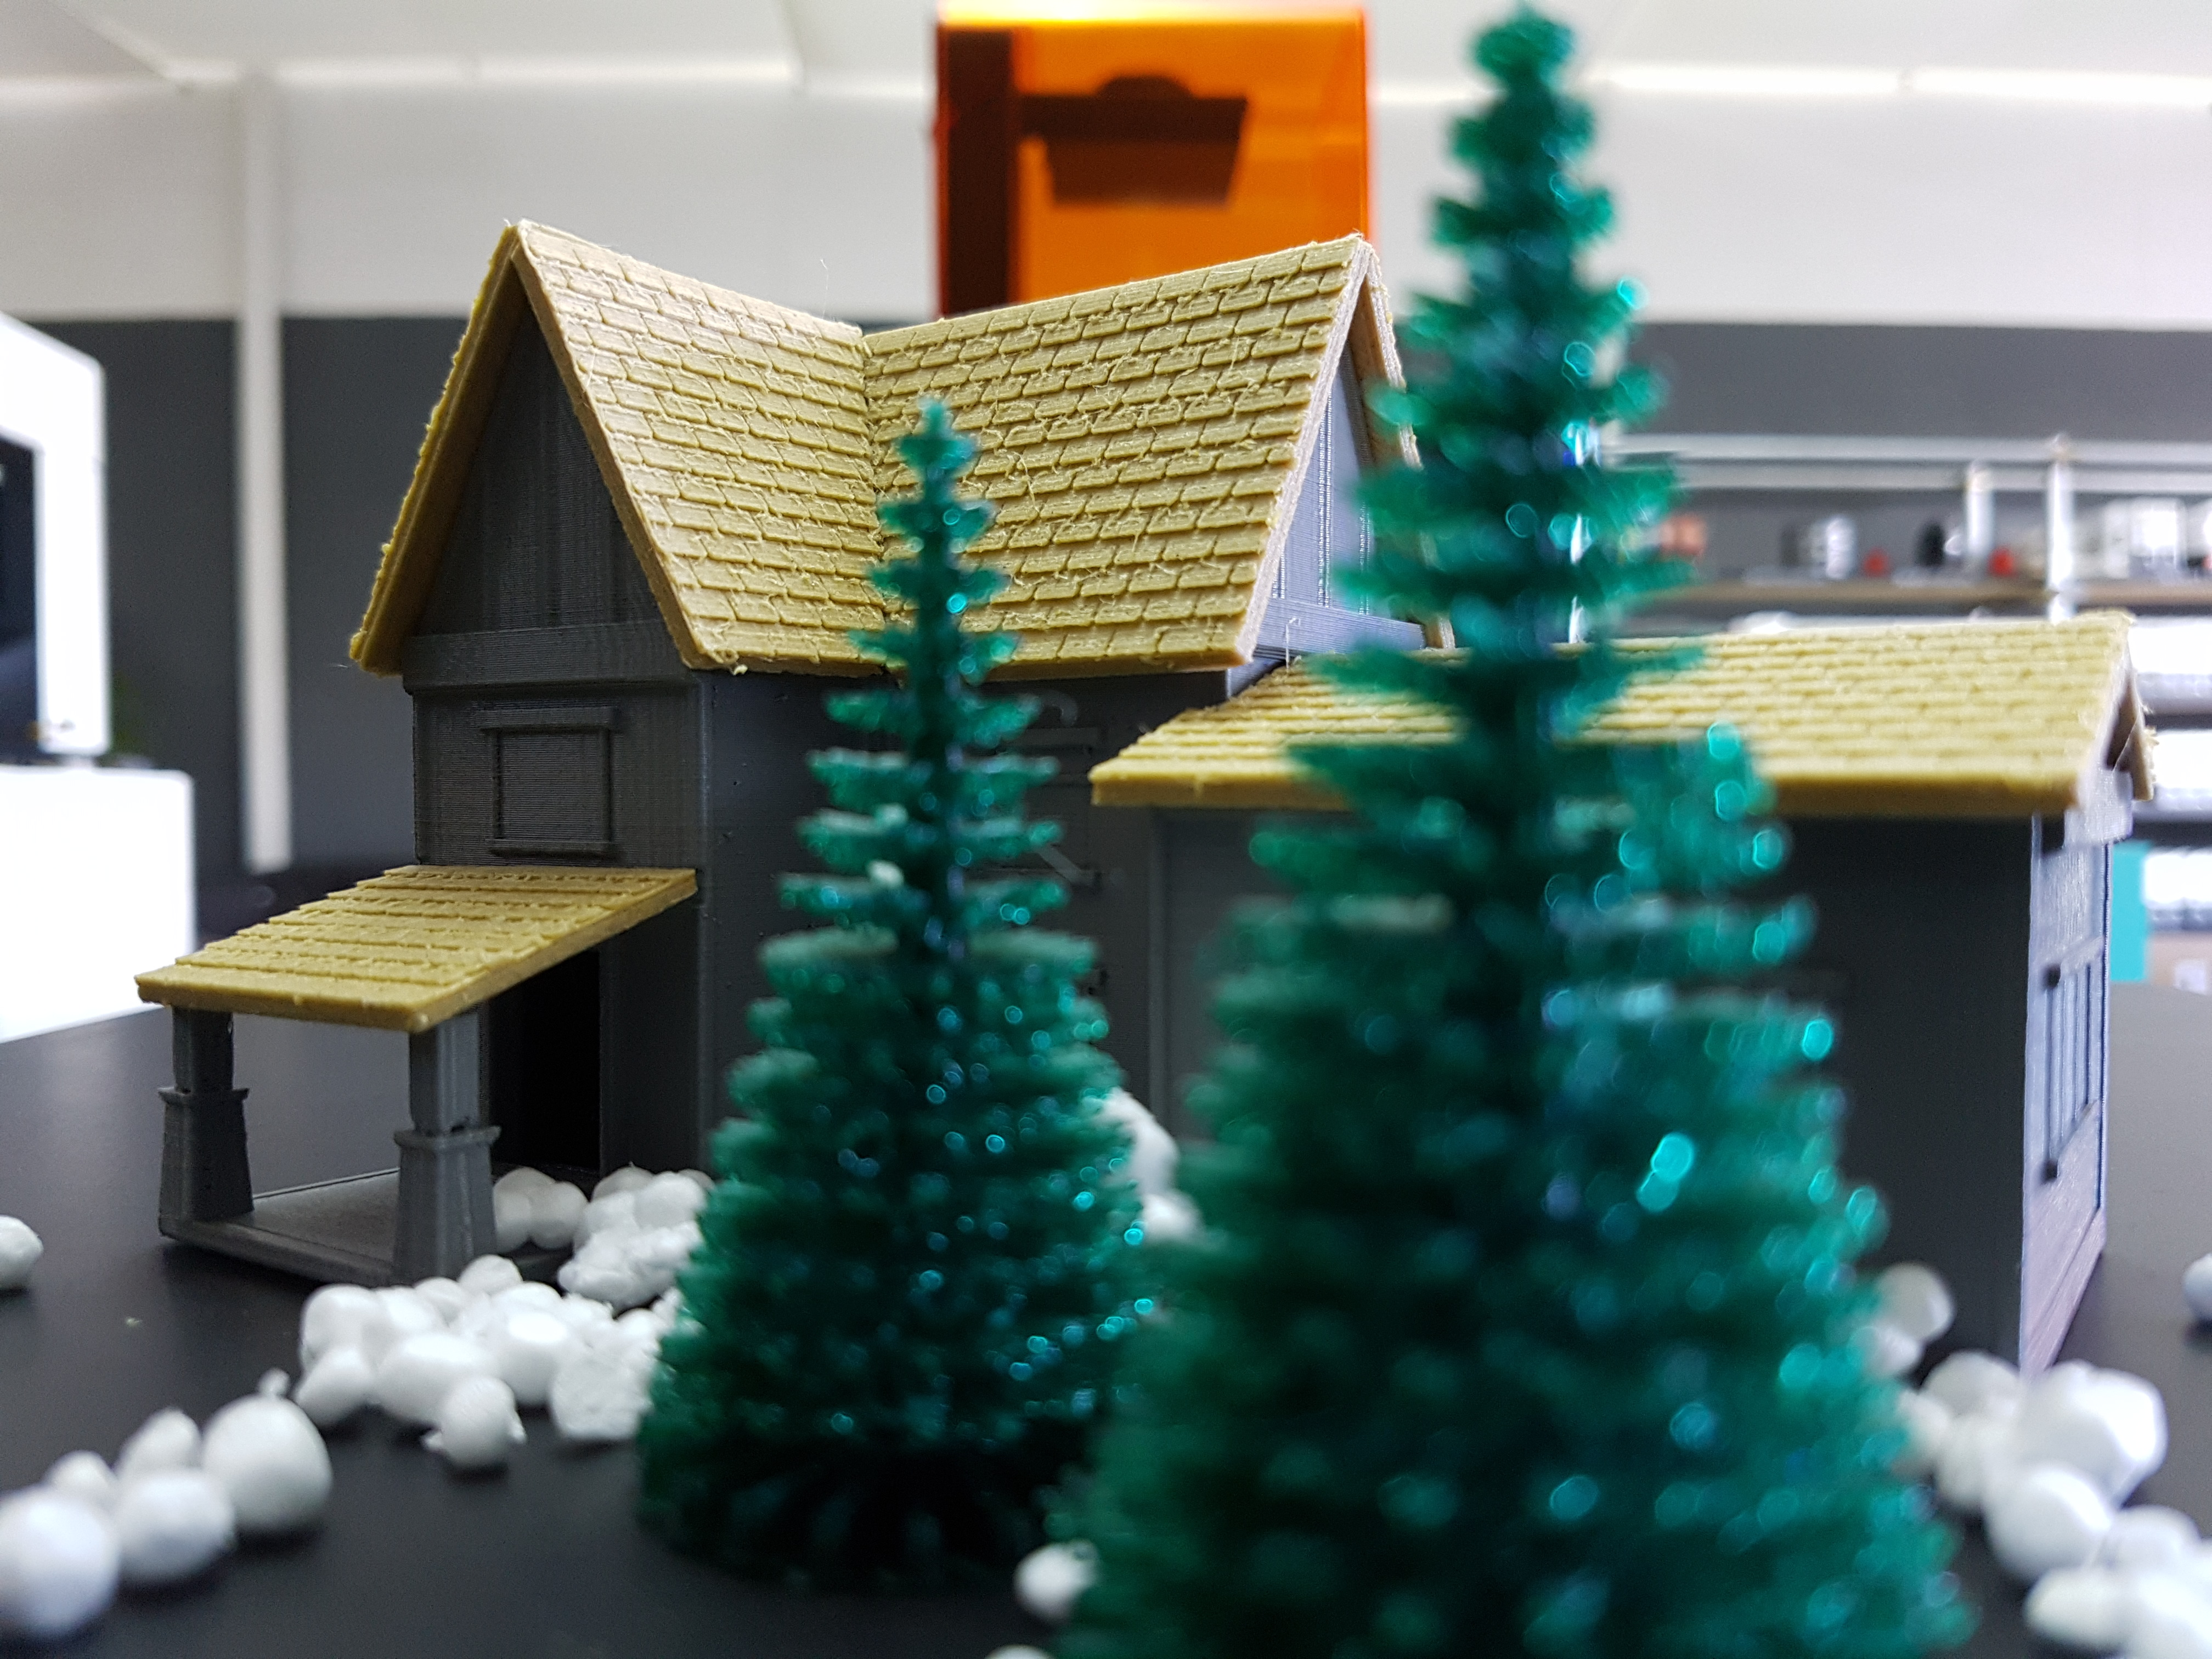 3D printed trees & wooden cabins on Ultimaker